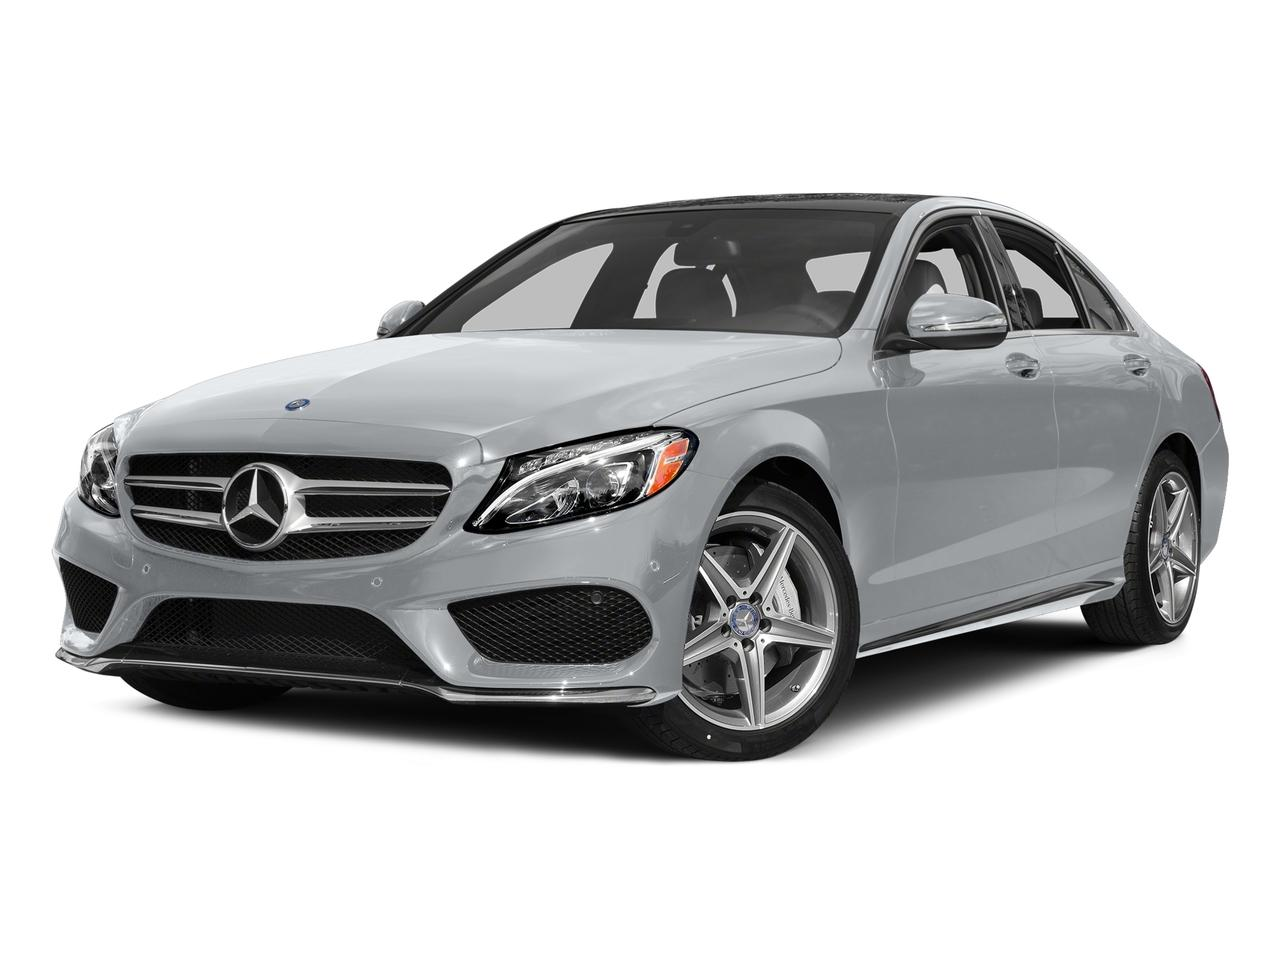 2015 Mercedes-Benz C-Class Vehicle Photo in Greeley, CO 80634